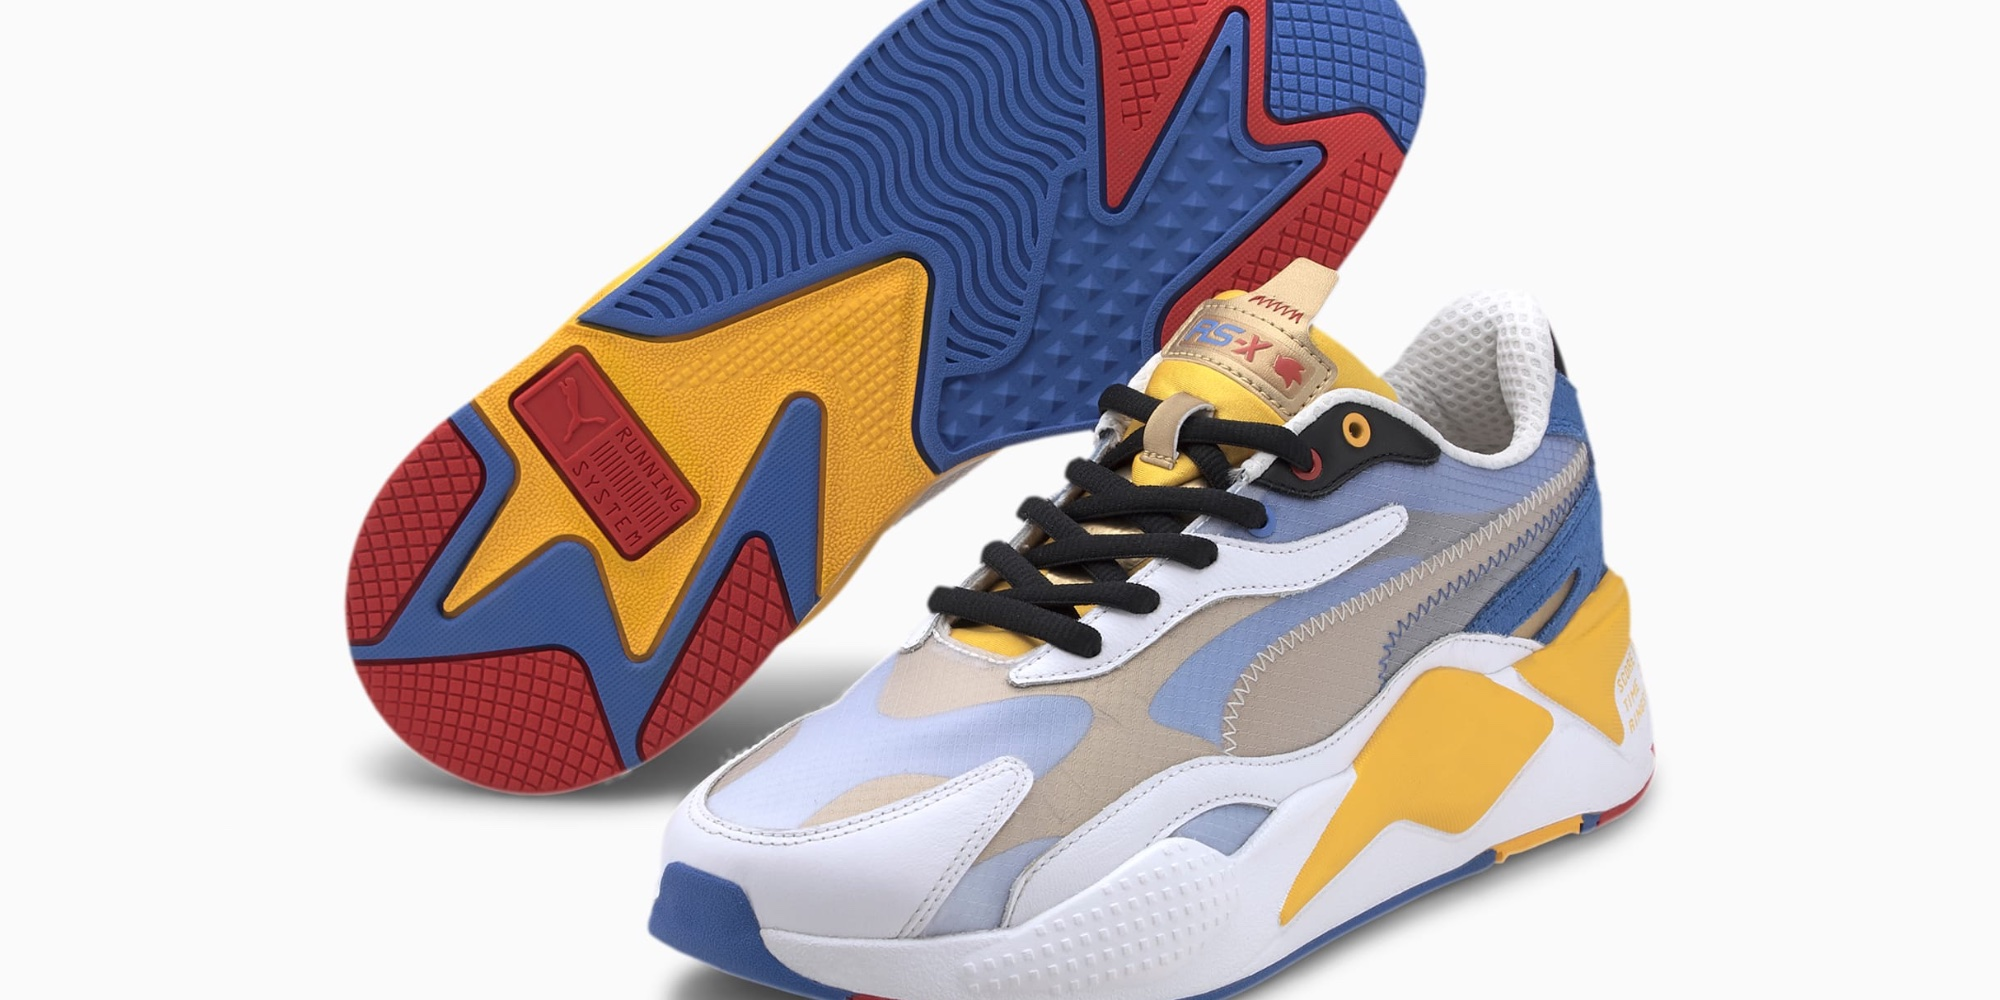 Sonic Puma shoes drop as part of SEGA collaboration from $18 ...